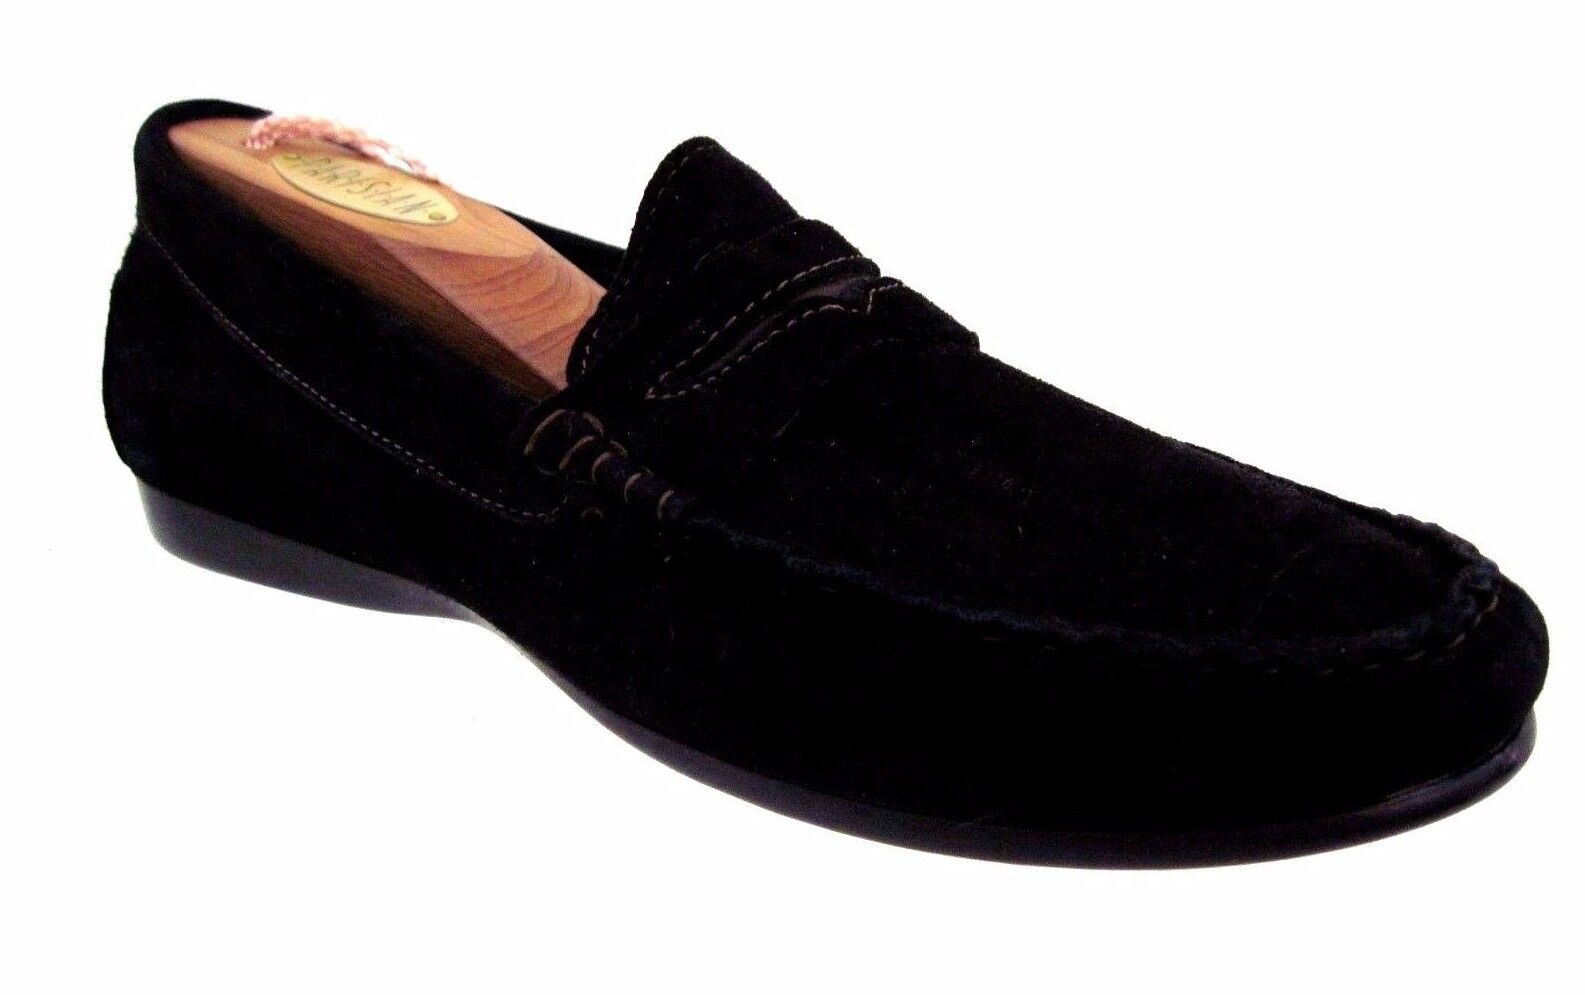 MUNRO American Black Suede Penny Style Loafers Size 7 N USA